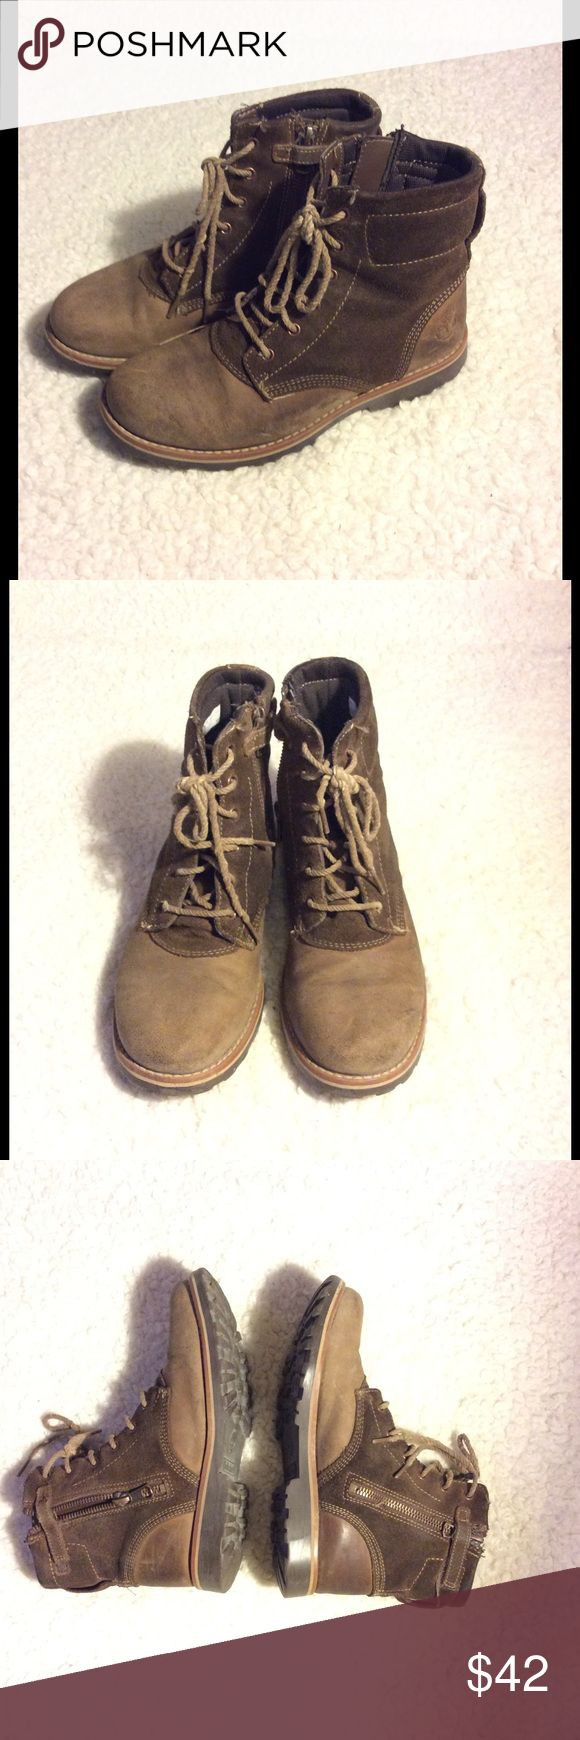 🎀 Girls Timberland Boots 🎀 Adorable boys Timberland boots. Distressed look. Side zipper. Timberland Shoes Boots